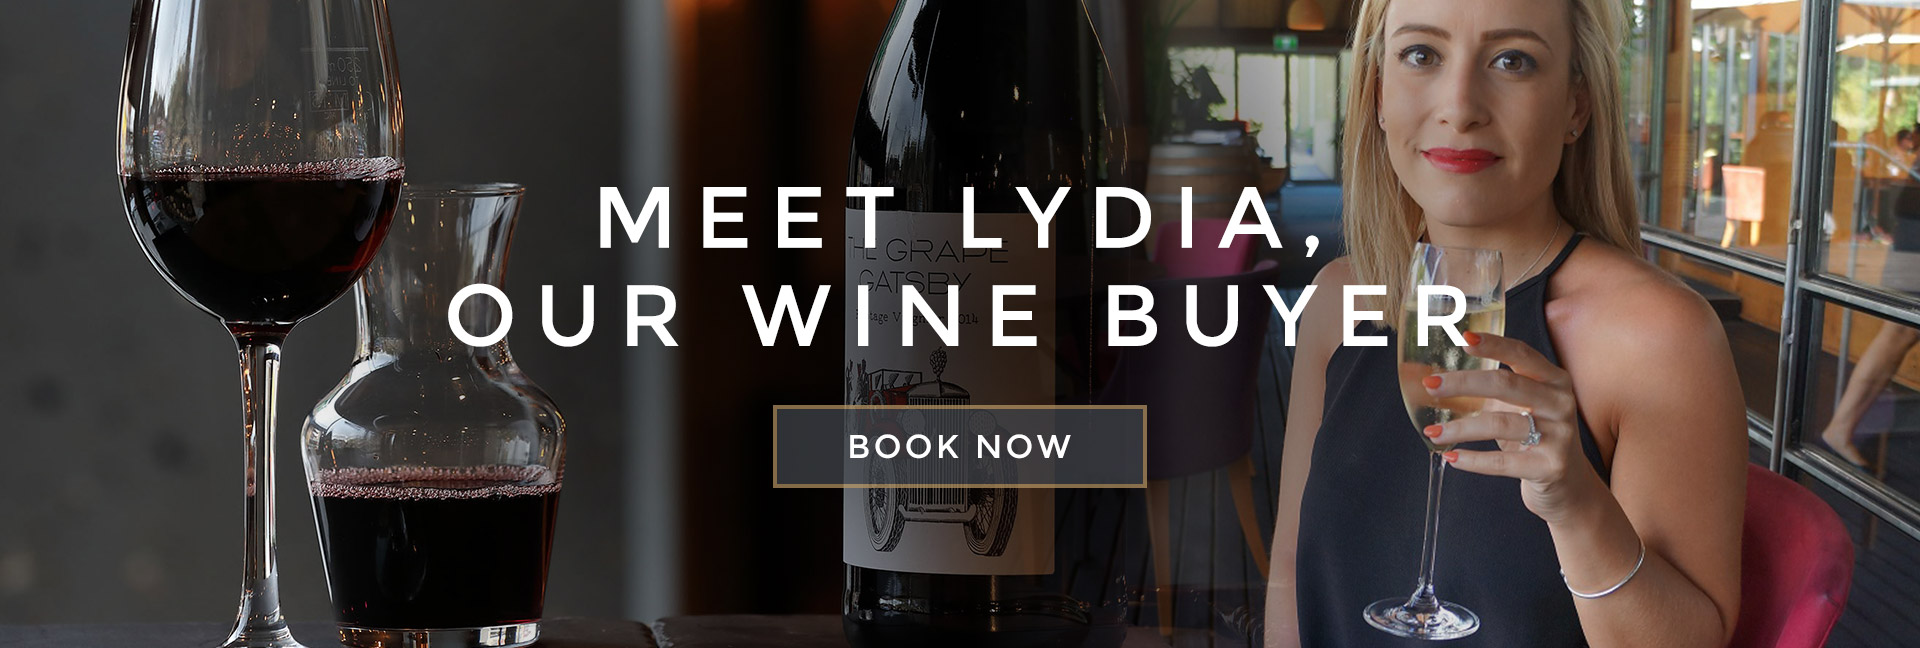 Meet Lydia, our wine buyer at All Bar One Villiers Street